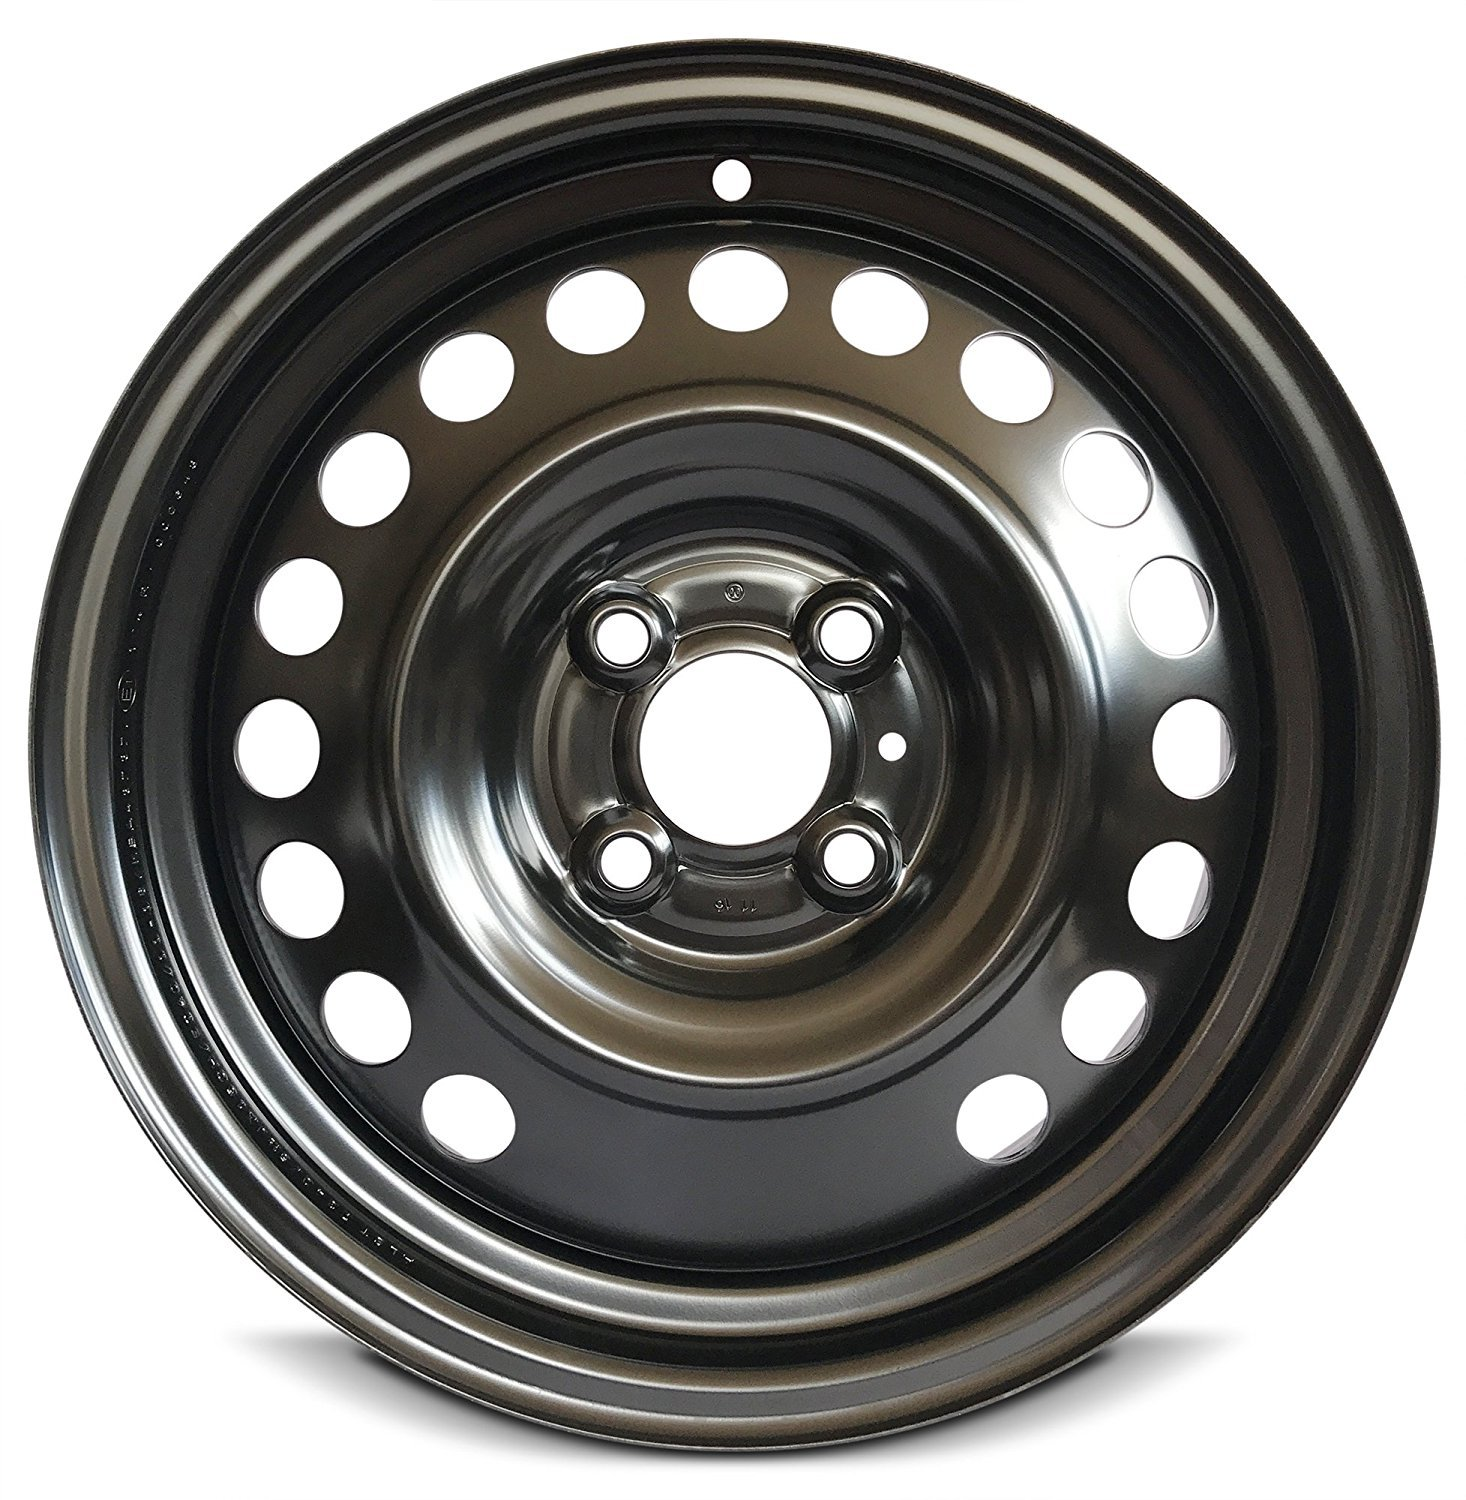 New Used Tires Wheels Rims In Orlando Fl Er Tire >> Road Ready Car Wheel For 2012 2019 Nissan Versa 15 Inch 4 Lug Black Steel Rim Fits R15 Tire Exact Oem Replacement Full Size Spare